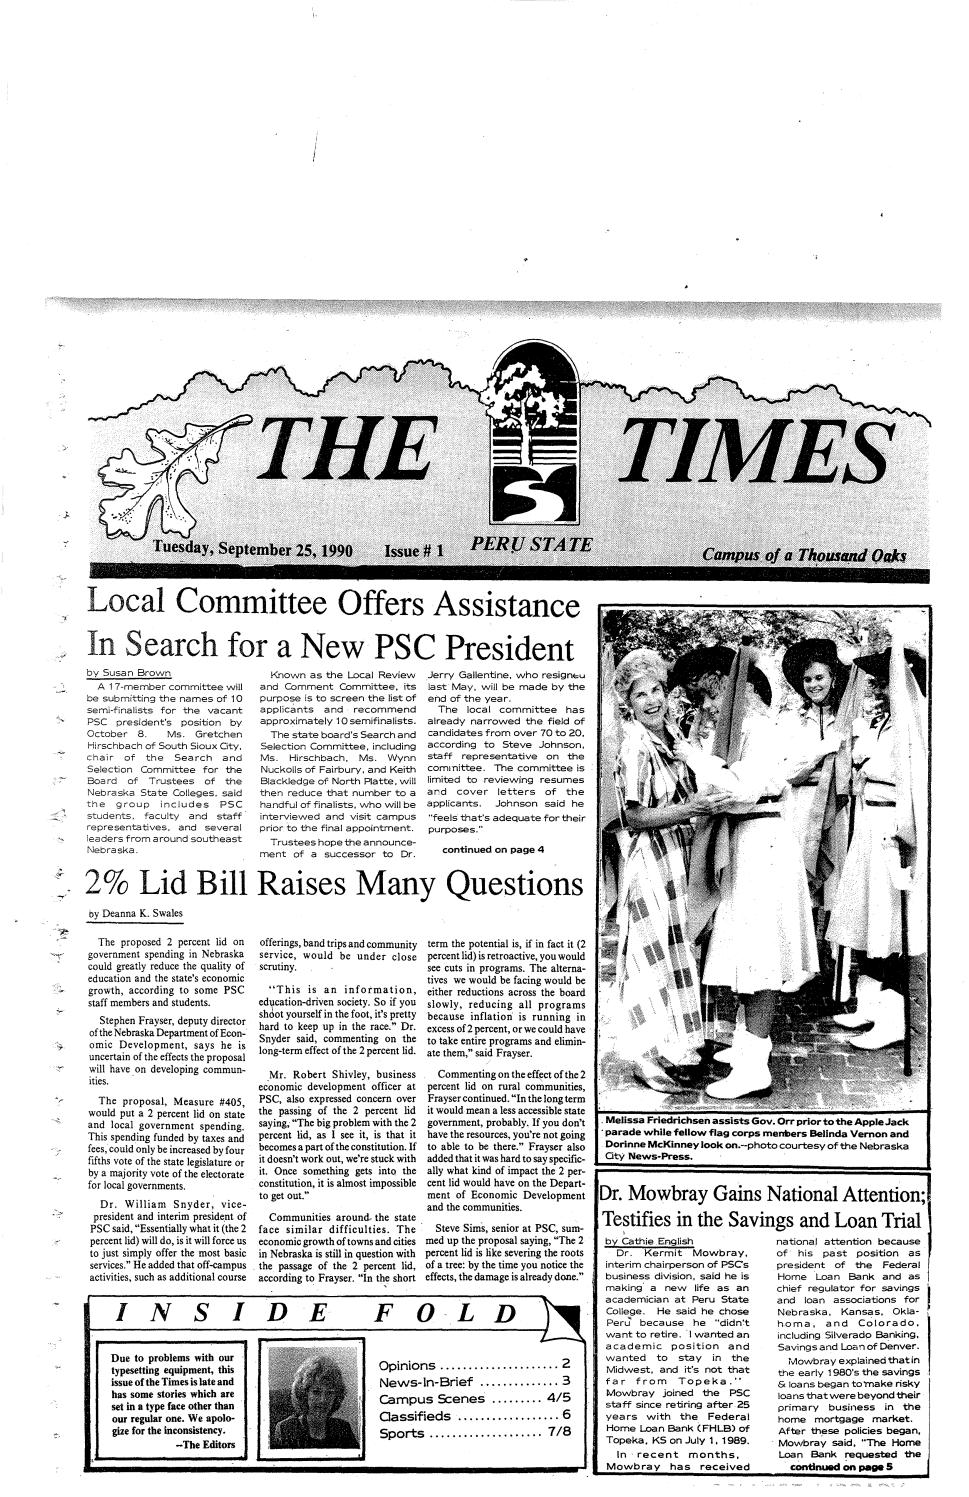 aa5d80afdec0 1990-1991 The Times - issues 1-13 by Peru State College Library - issuu